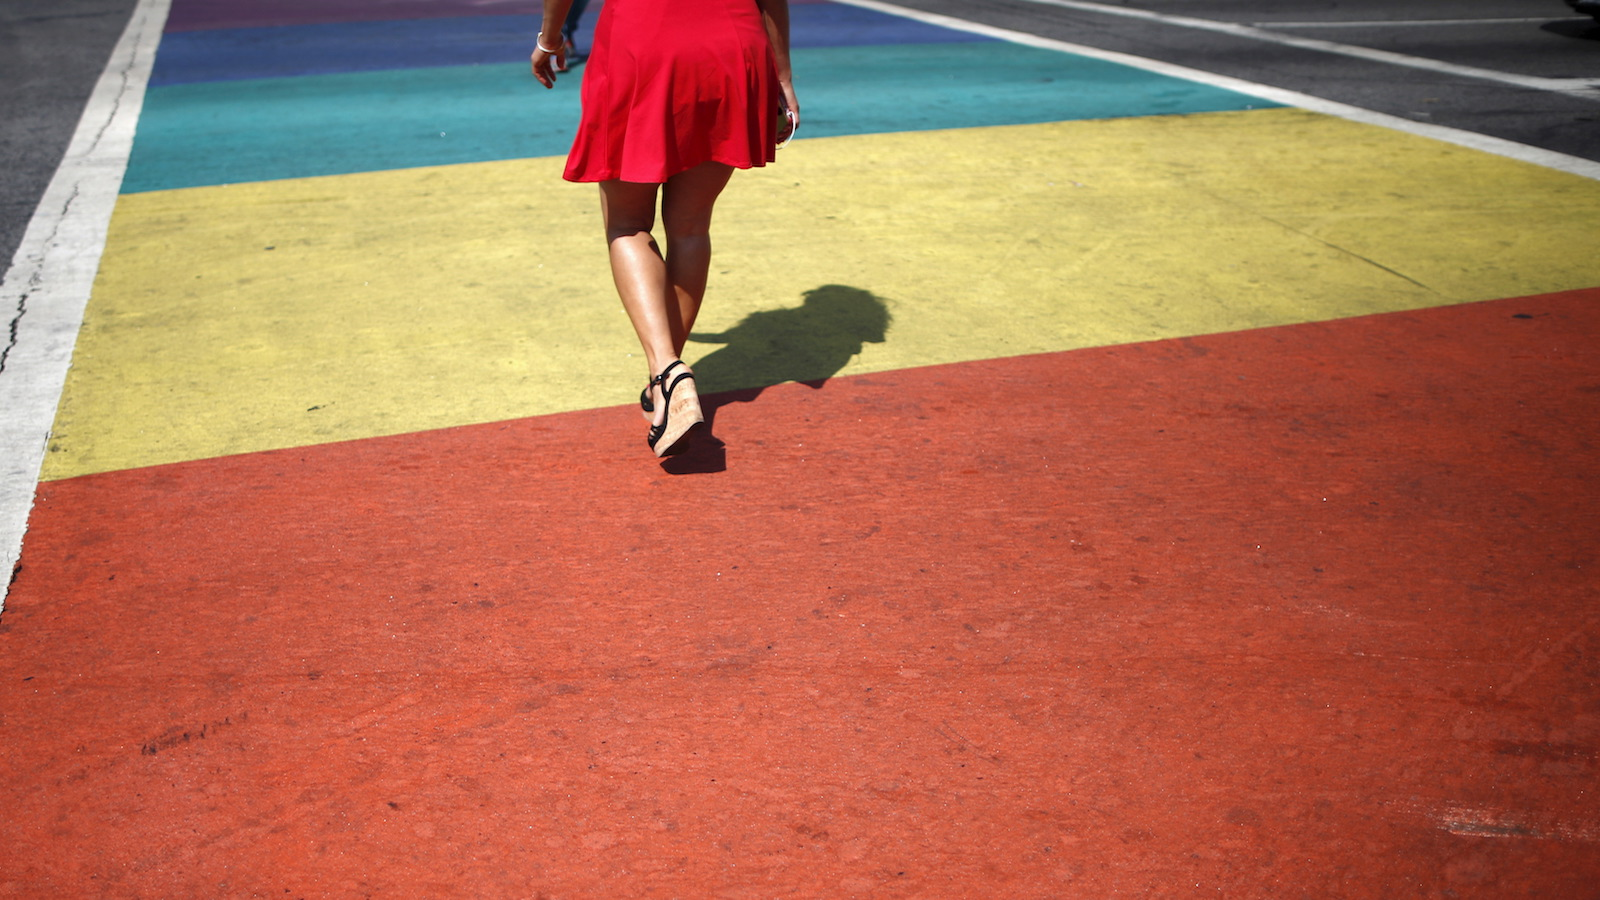 A person walks across a rainbow pedestrian crossing on a road in West Hollywood, United States, June 26, 2015. The U.S. Supreme Court ruled on Friday that the U.S. Constitution provides same-sex couples the right to marry in a historic triumph for the American gay rights movement. REUTERS/Lucy Nicholson       TPX IMAGES OF THE DAY      - RTX1HYR5